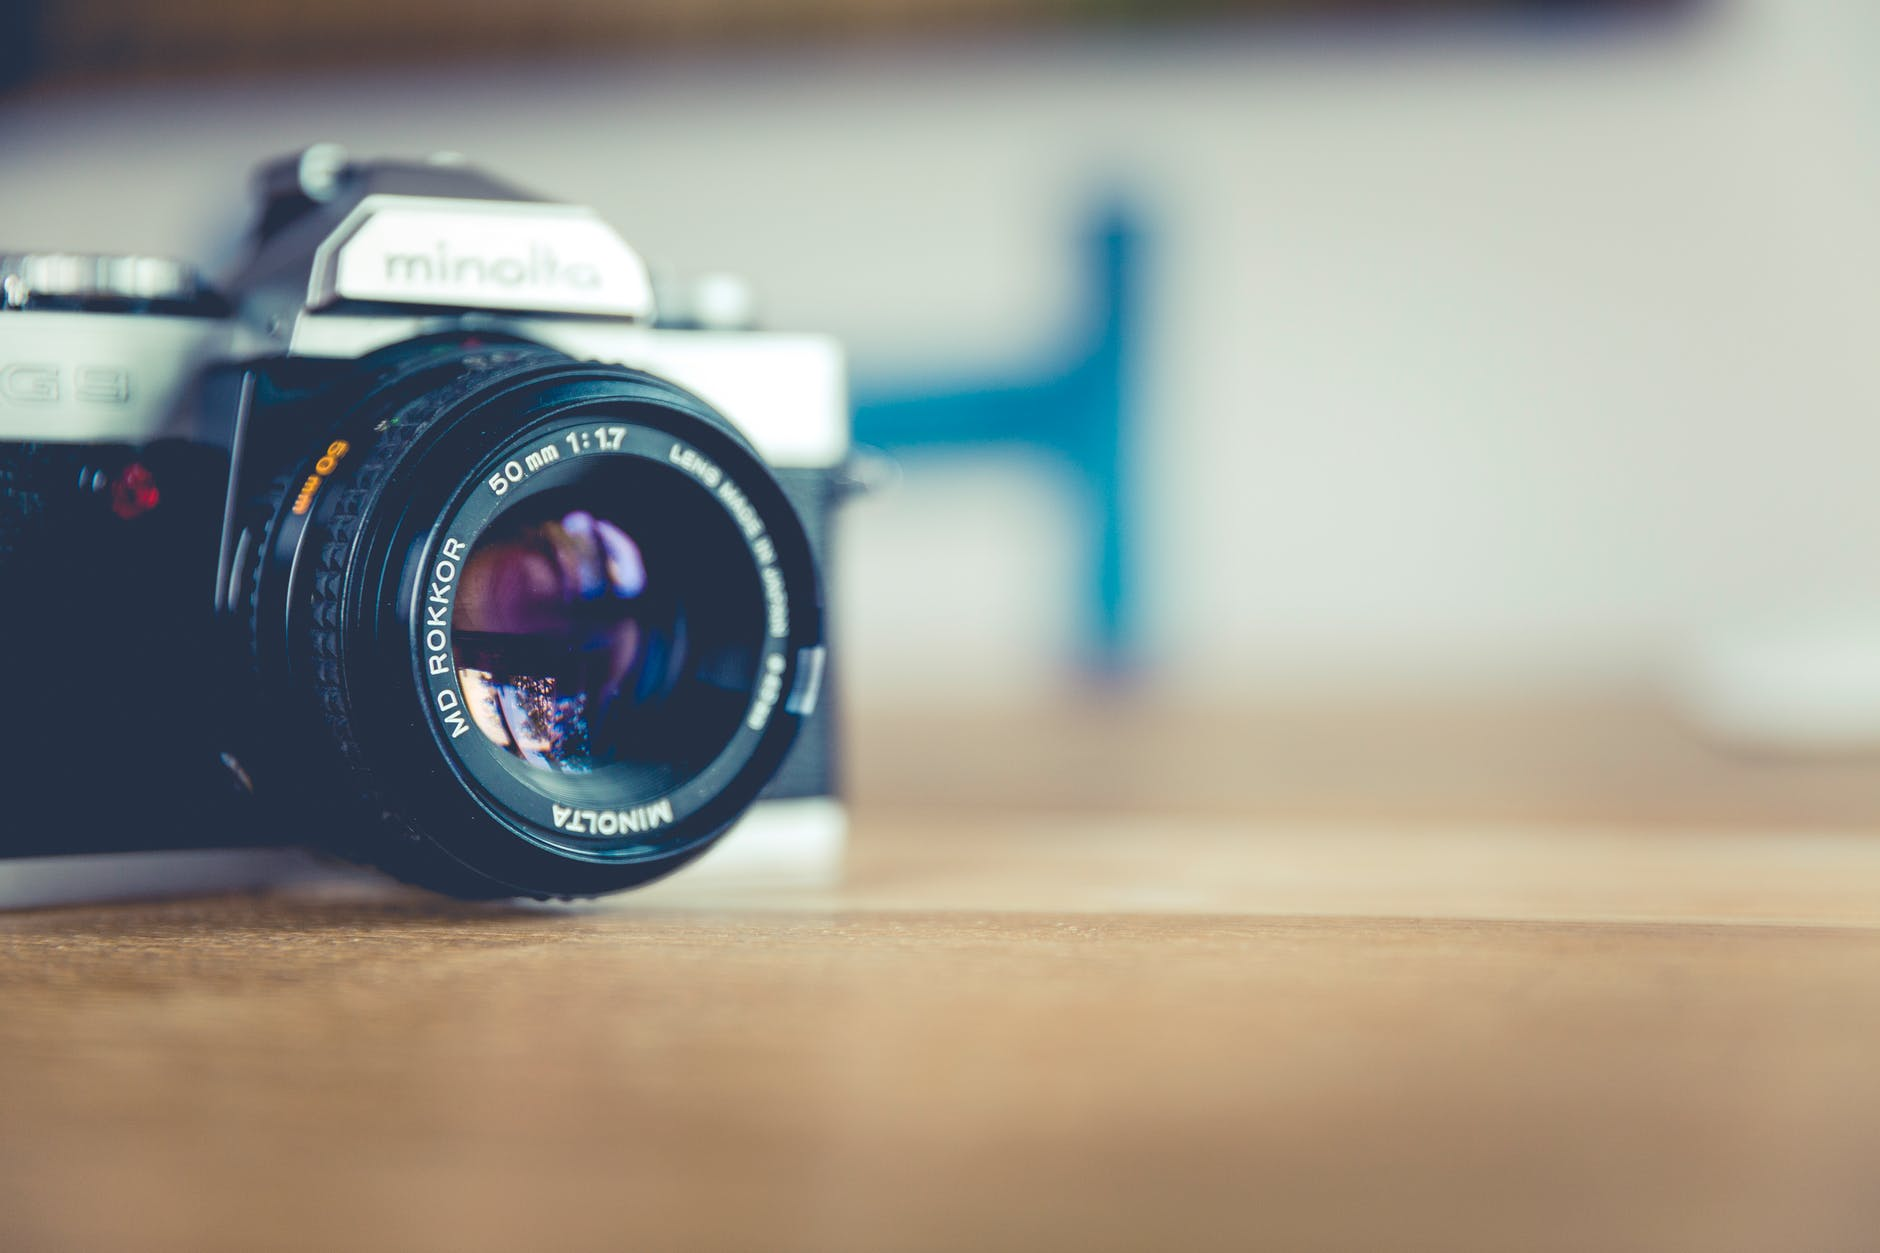 picture of an analogue camera (public domain image)